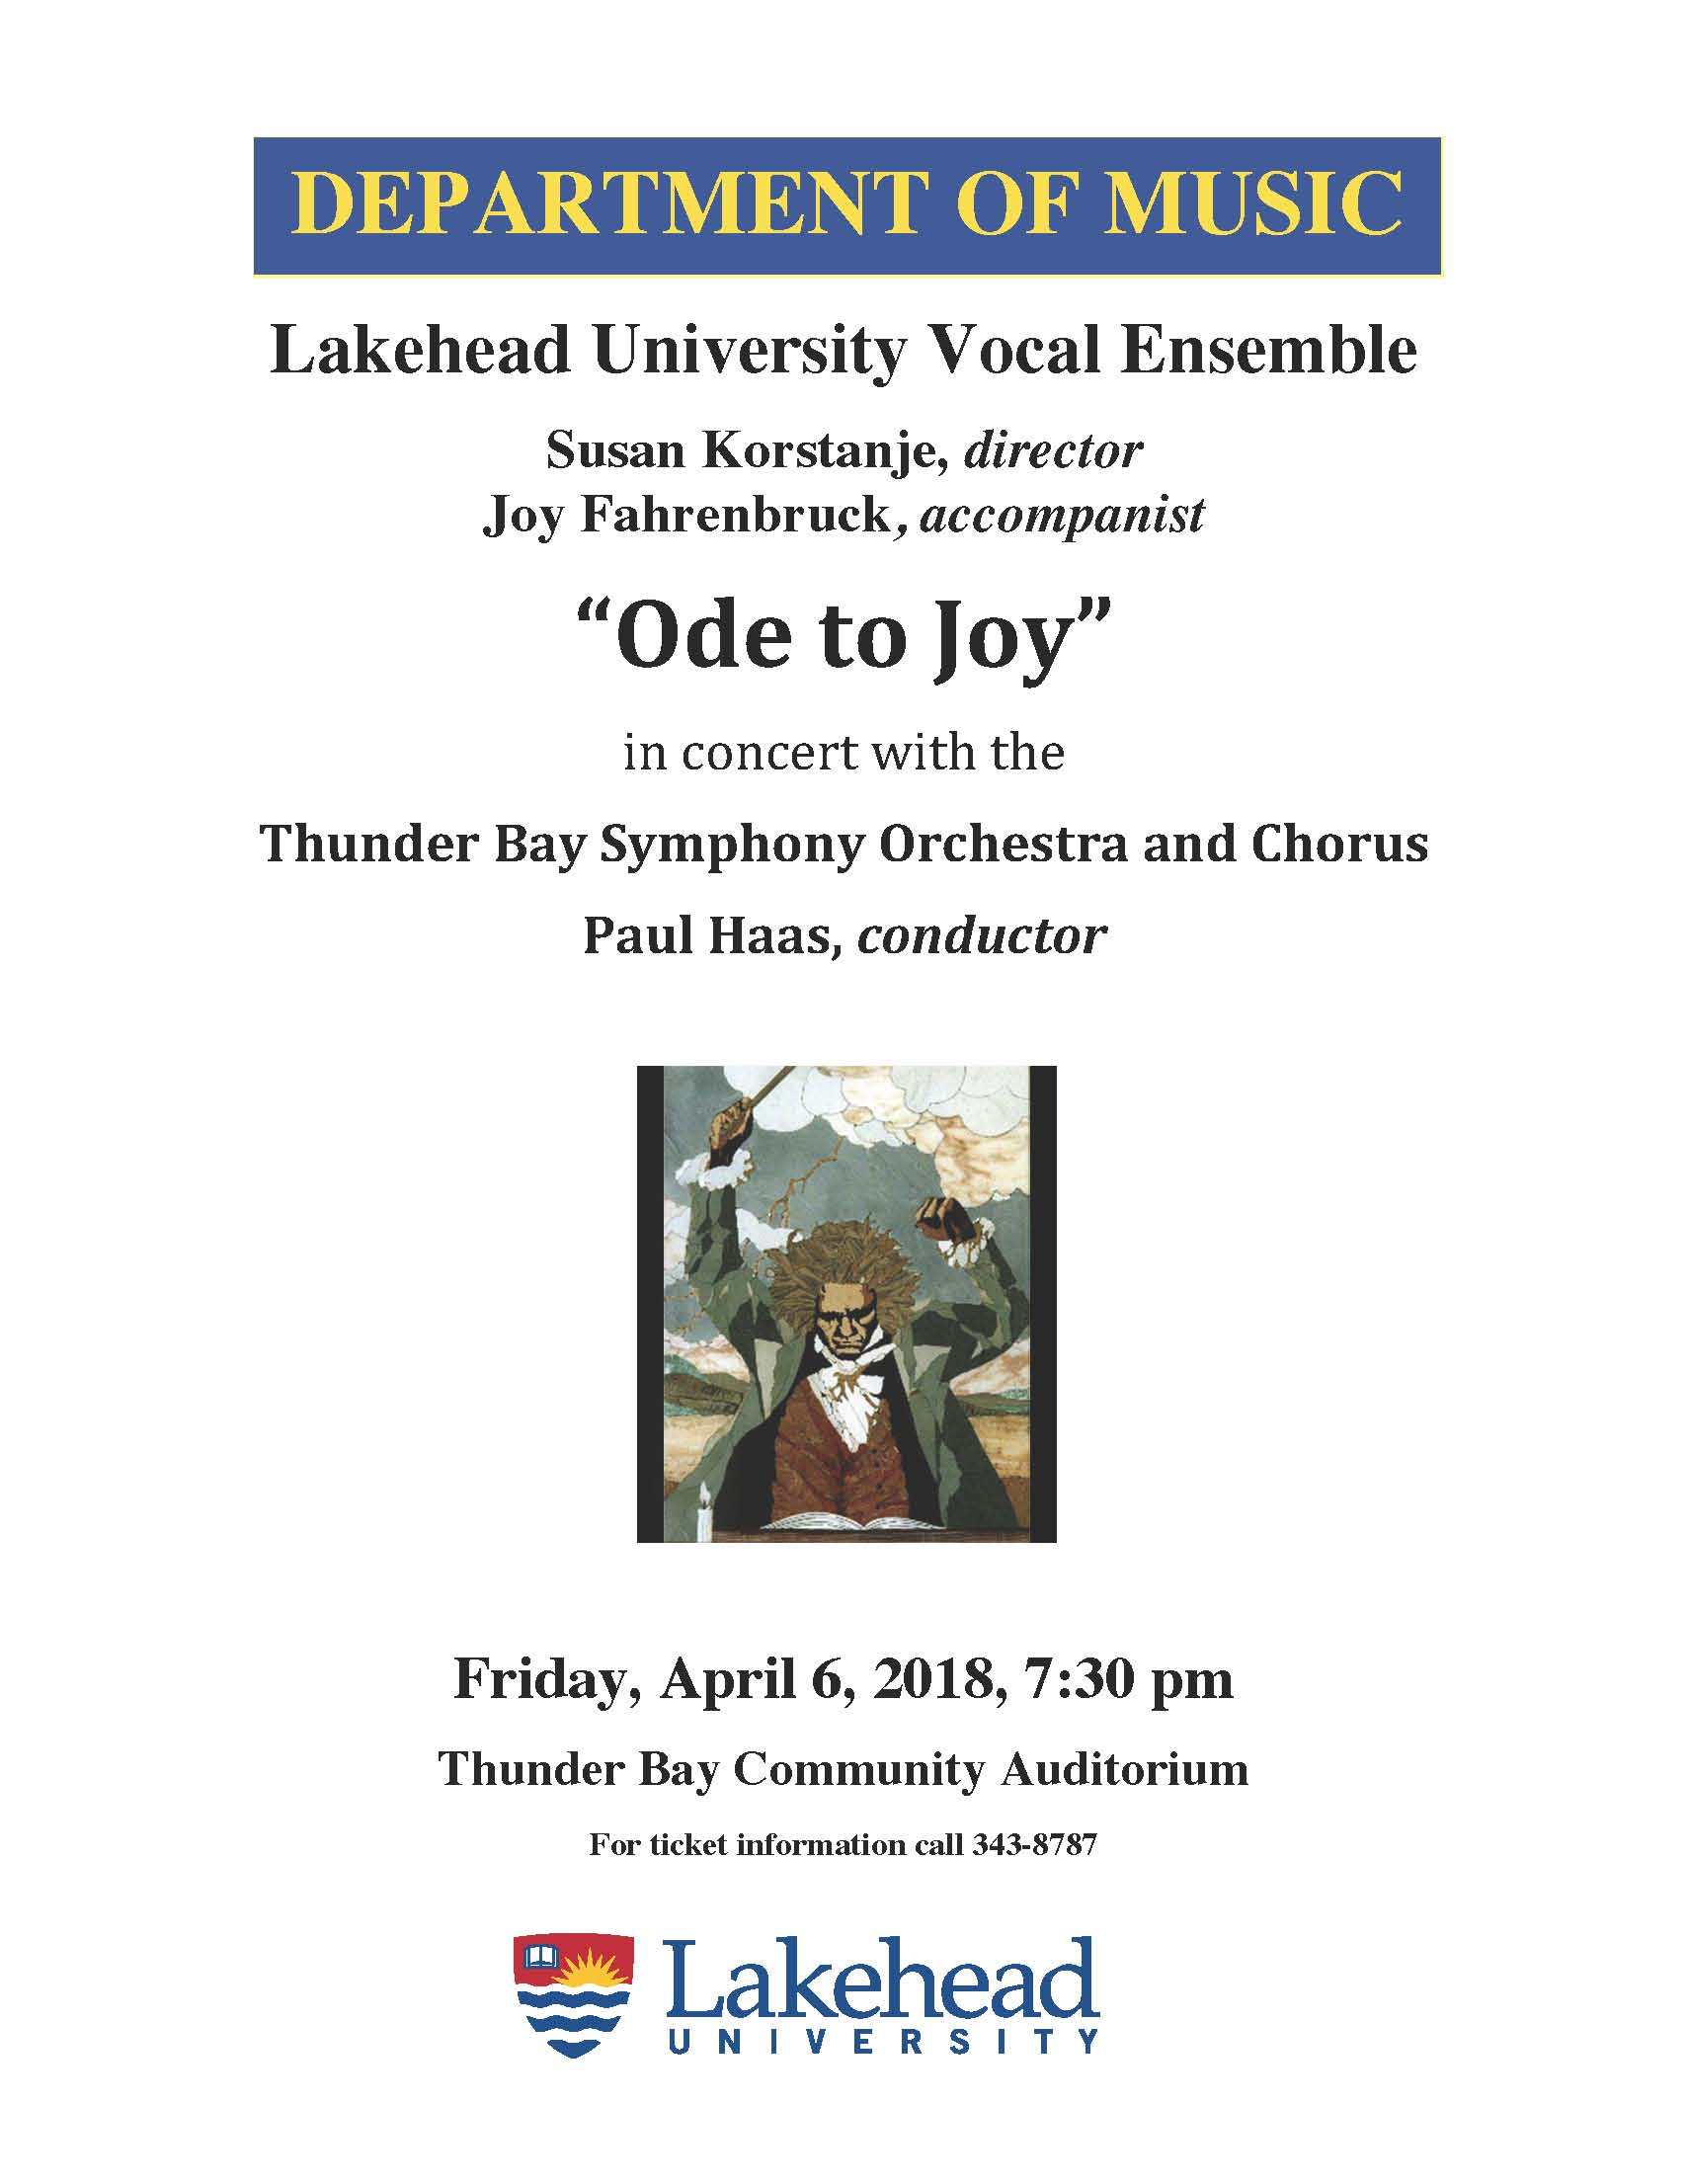 Vocal Ensemble Ode to Joy Concert